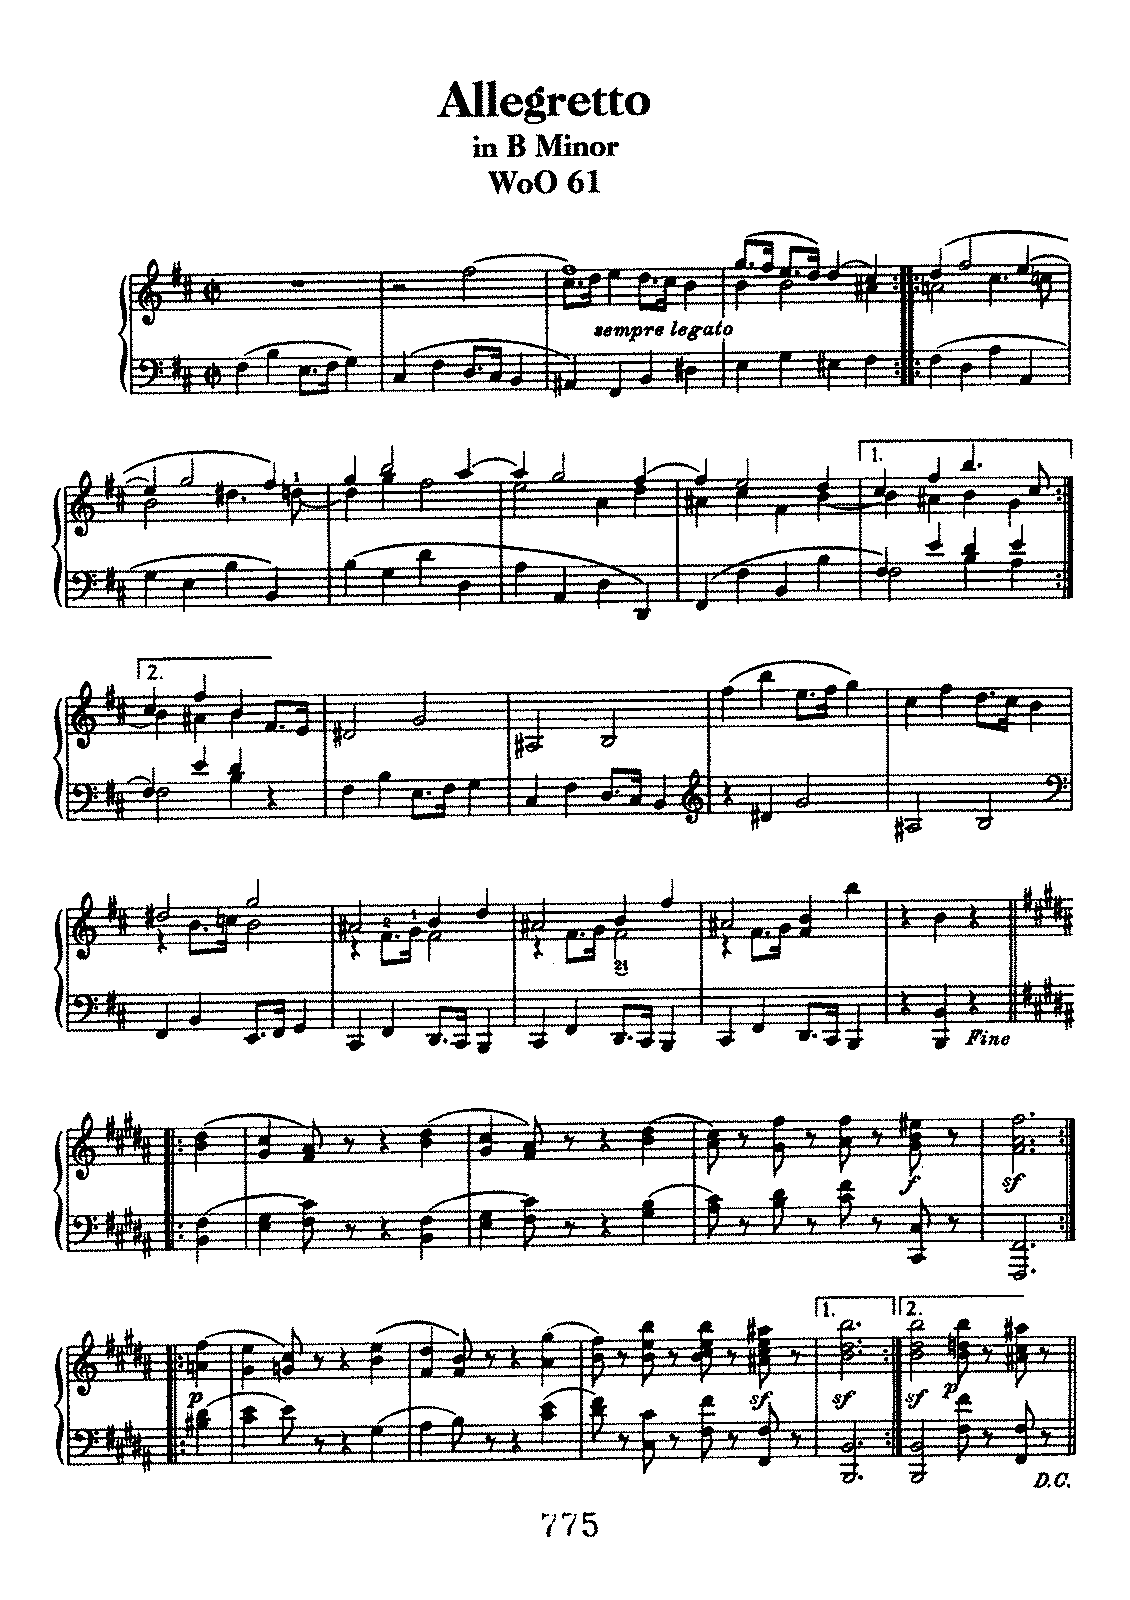 Beethoven woo61 Allegretto in b.pdf